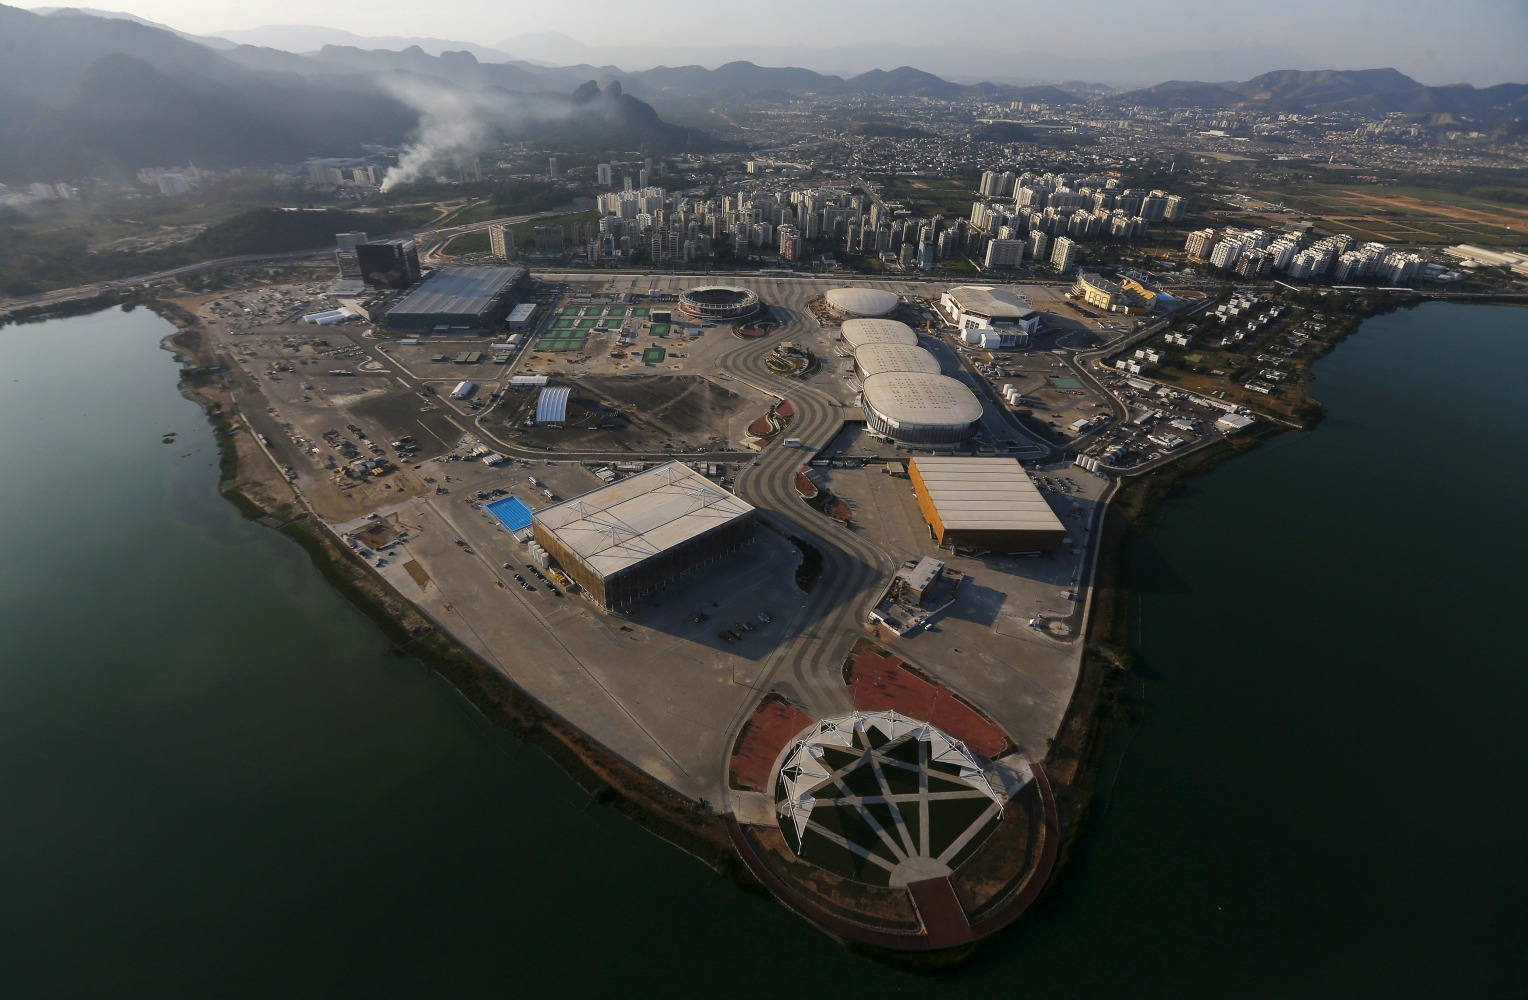 Rio Olympics 160510 rio olympics rd 1215a a124a137ed344b6ecf07a7935b829013.nbcnews ux 2880 1000 10 Fascinating Things to Know About Rio Olympics 2016 That Will Double Your Excitement Tomatoheart 10